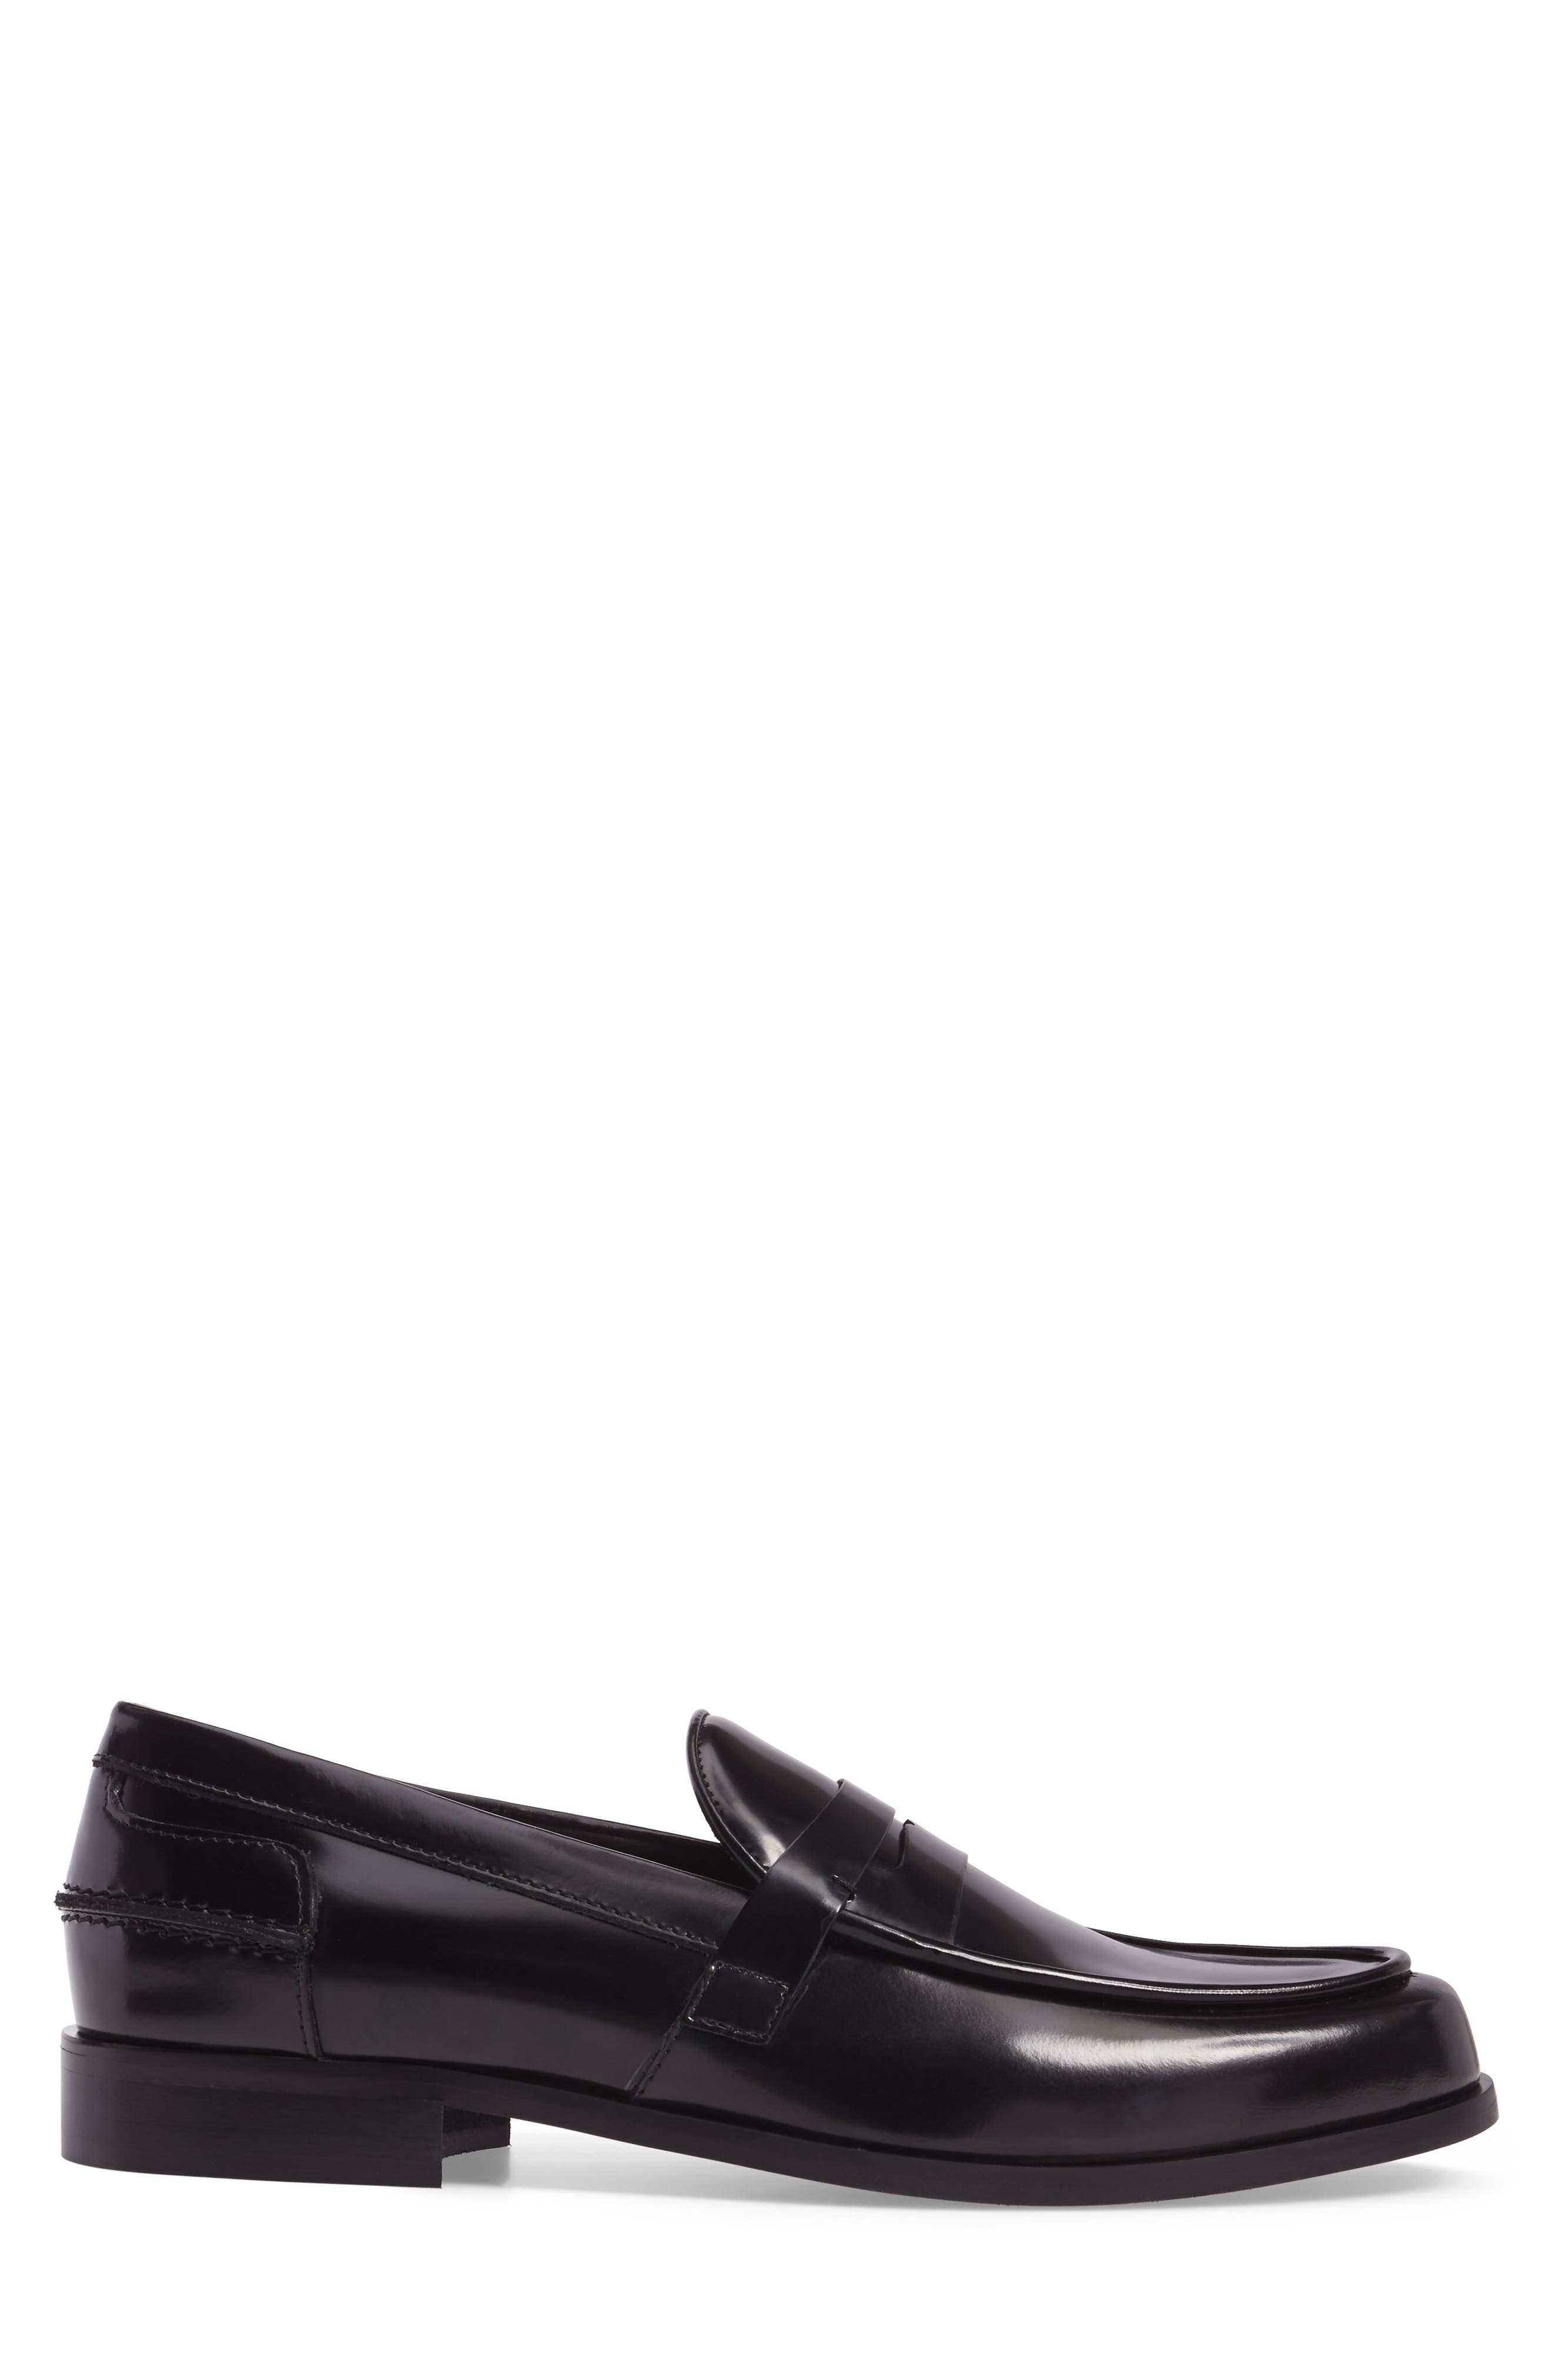 Donald J Pliner Sawyer Penny Loafer,                             Alternate thumbnail 5, color,